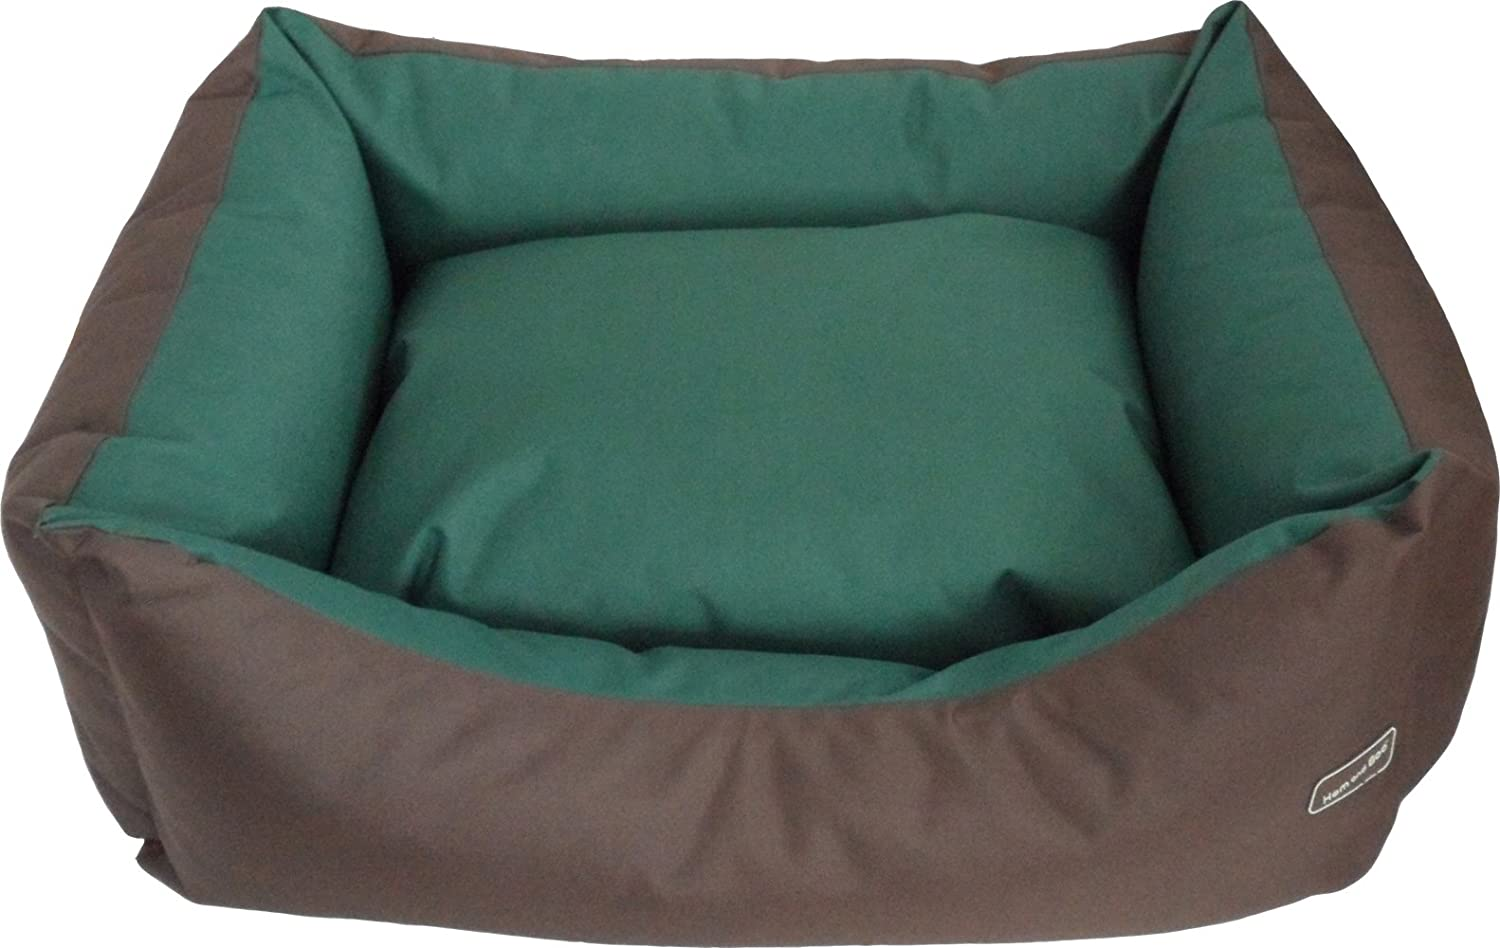 Hem and Boo Waterproof Rectangle Dog Bed, Medium, Country Green Rusty Brown